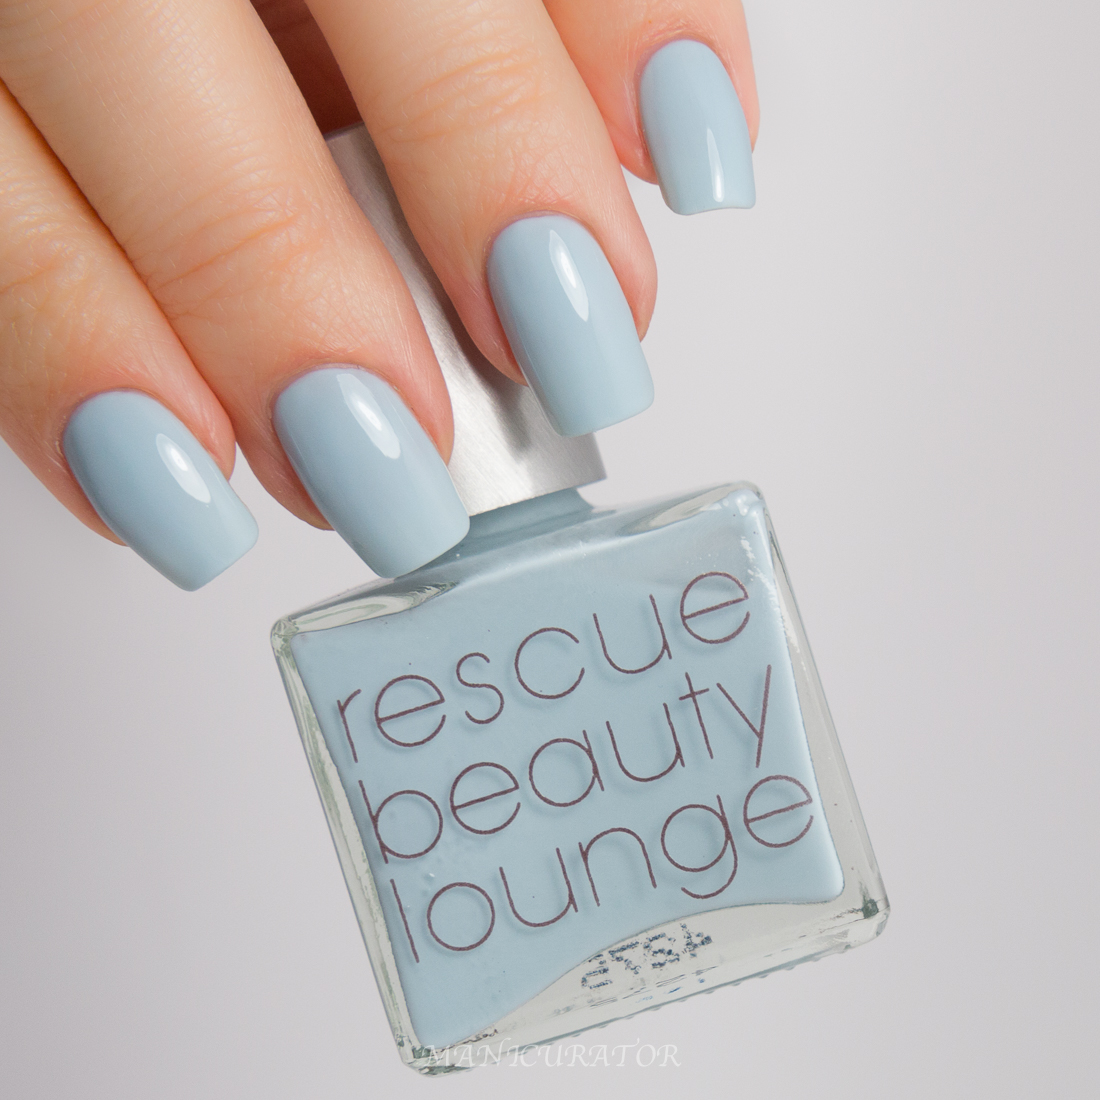 R29-Rescue-Beauty-Lounge-Better-Than-Boyfriend-Jeans